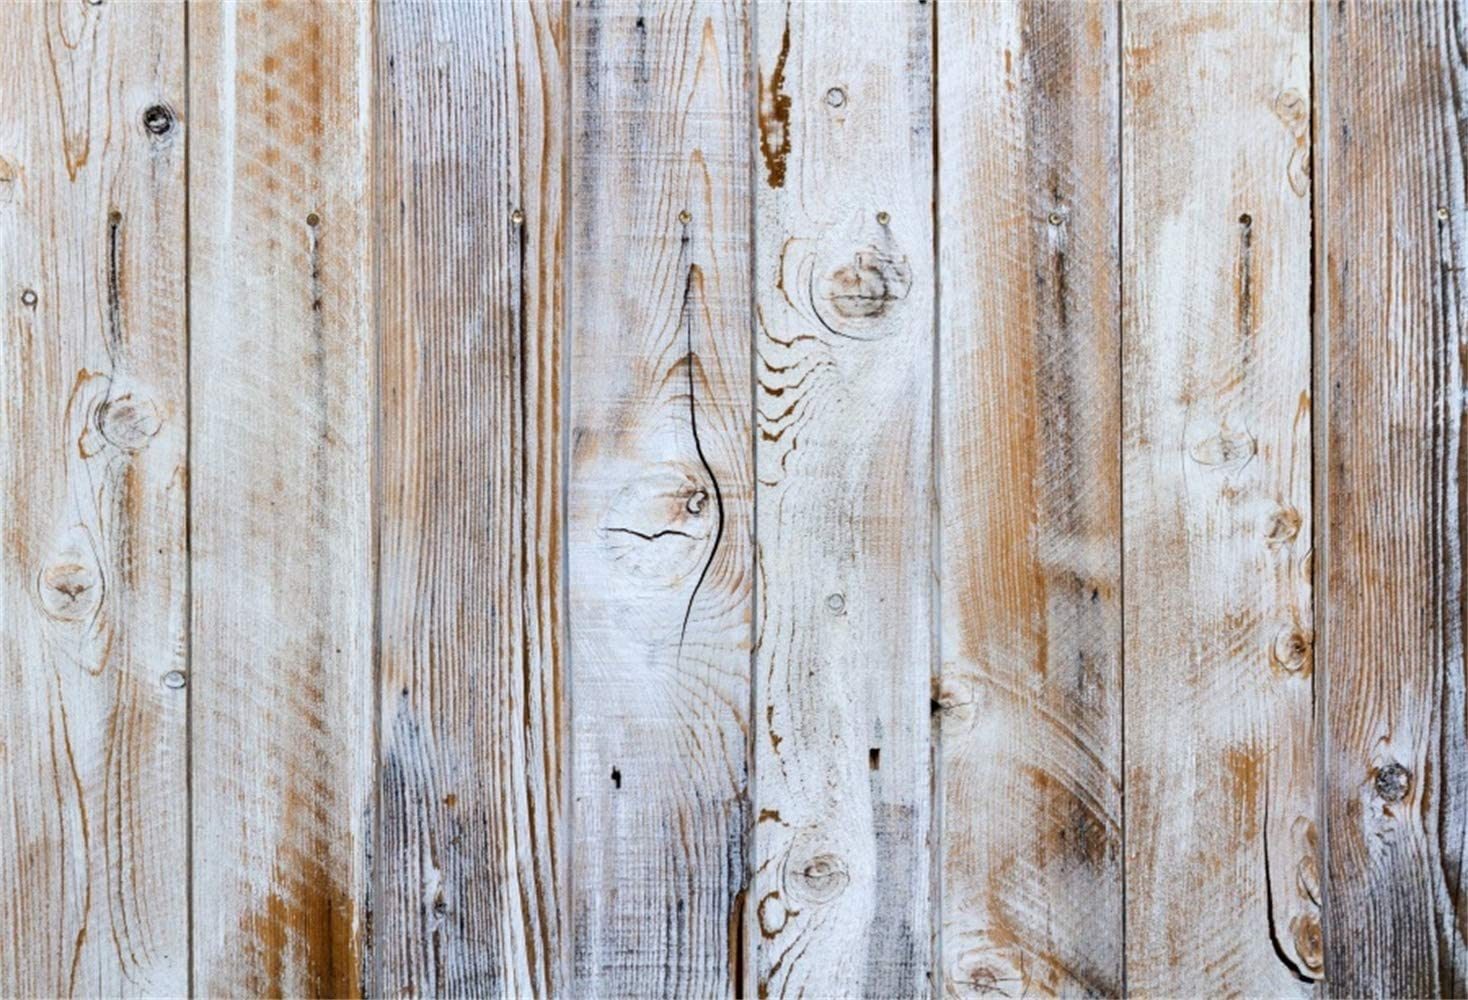 Polyester 10x6.5ft Grunge Peeled White Lateral-Cut Wood Plank Photography Background Rustic Weathered Wooden Board Backdrop Children Adult Pets Artistic Portrait Shoot Studio Props